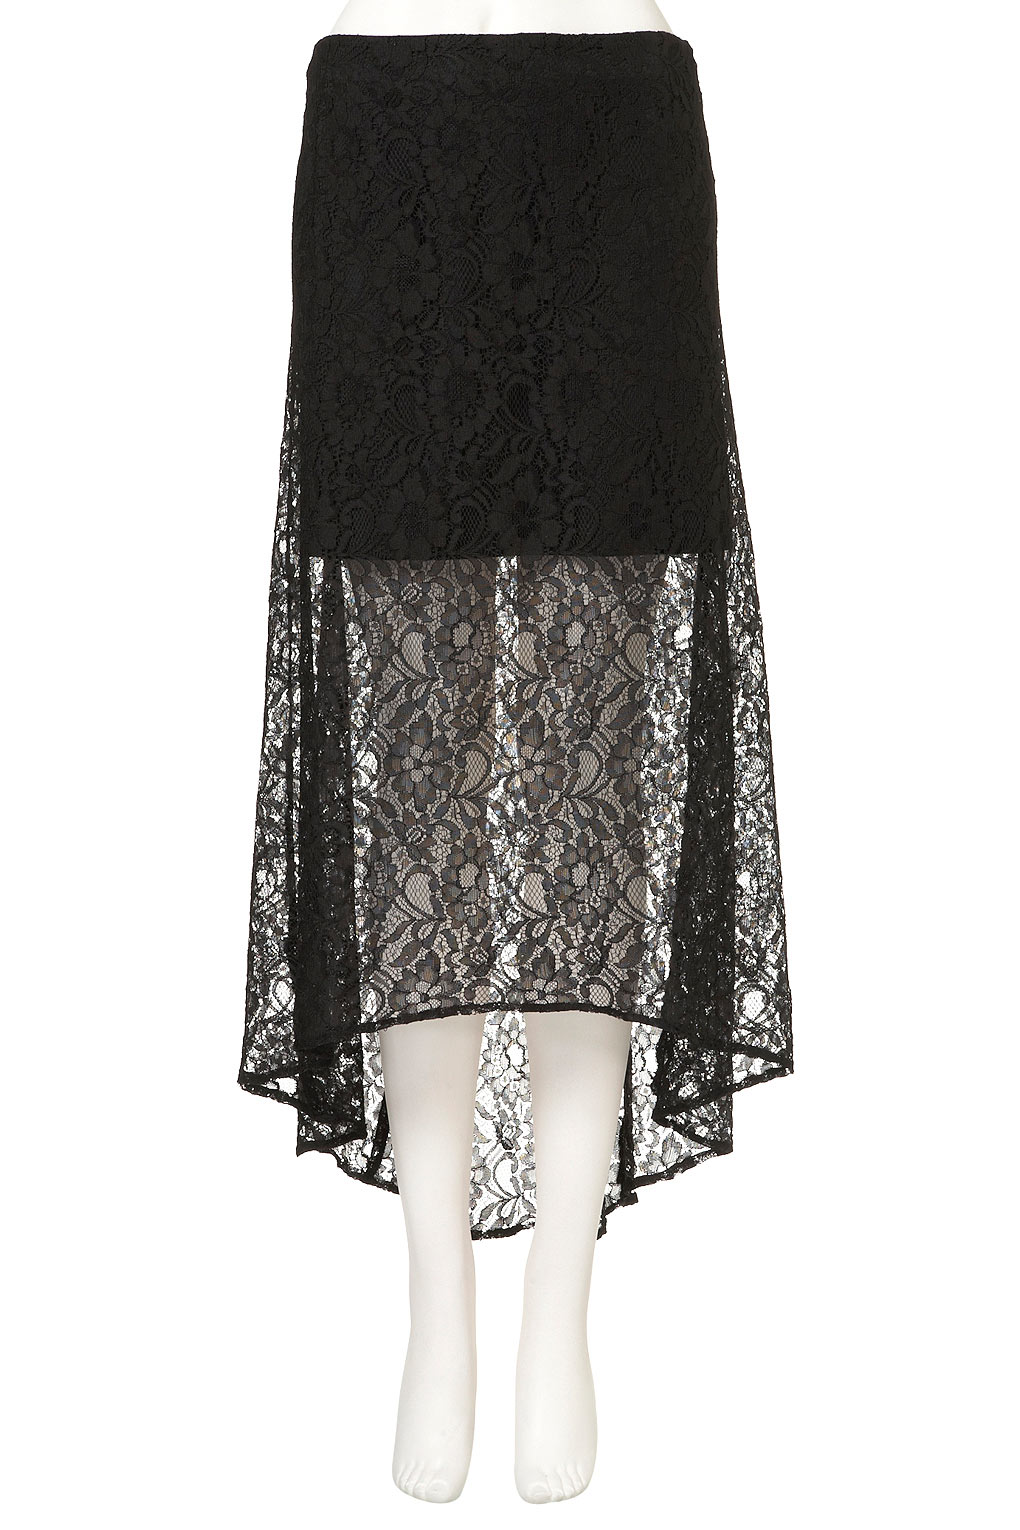 topshop black lace maxi skirt in black lyst